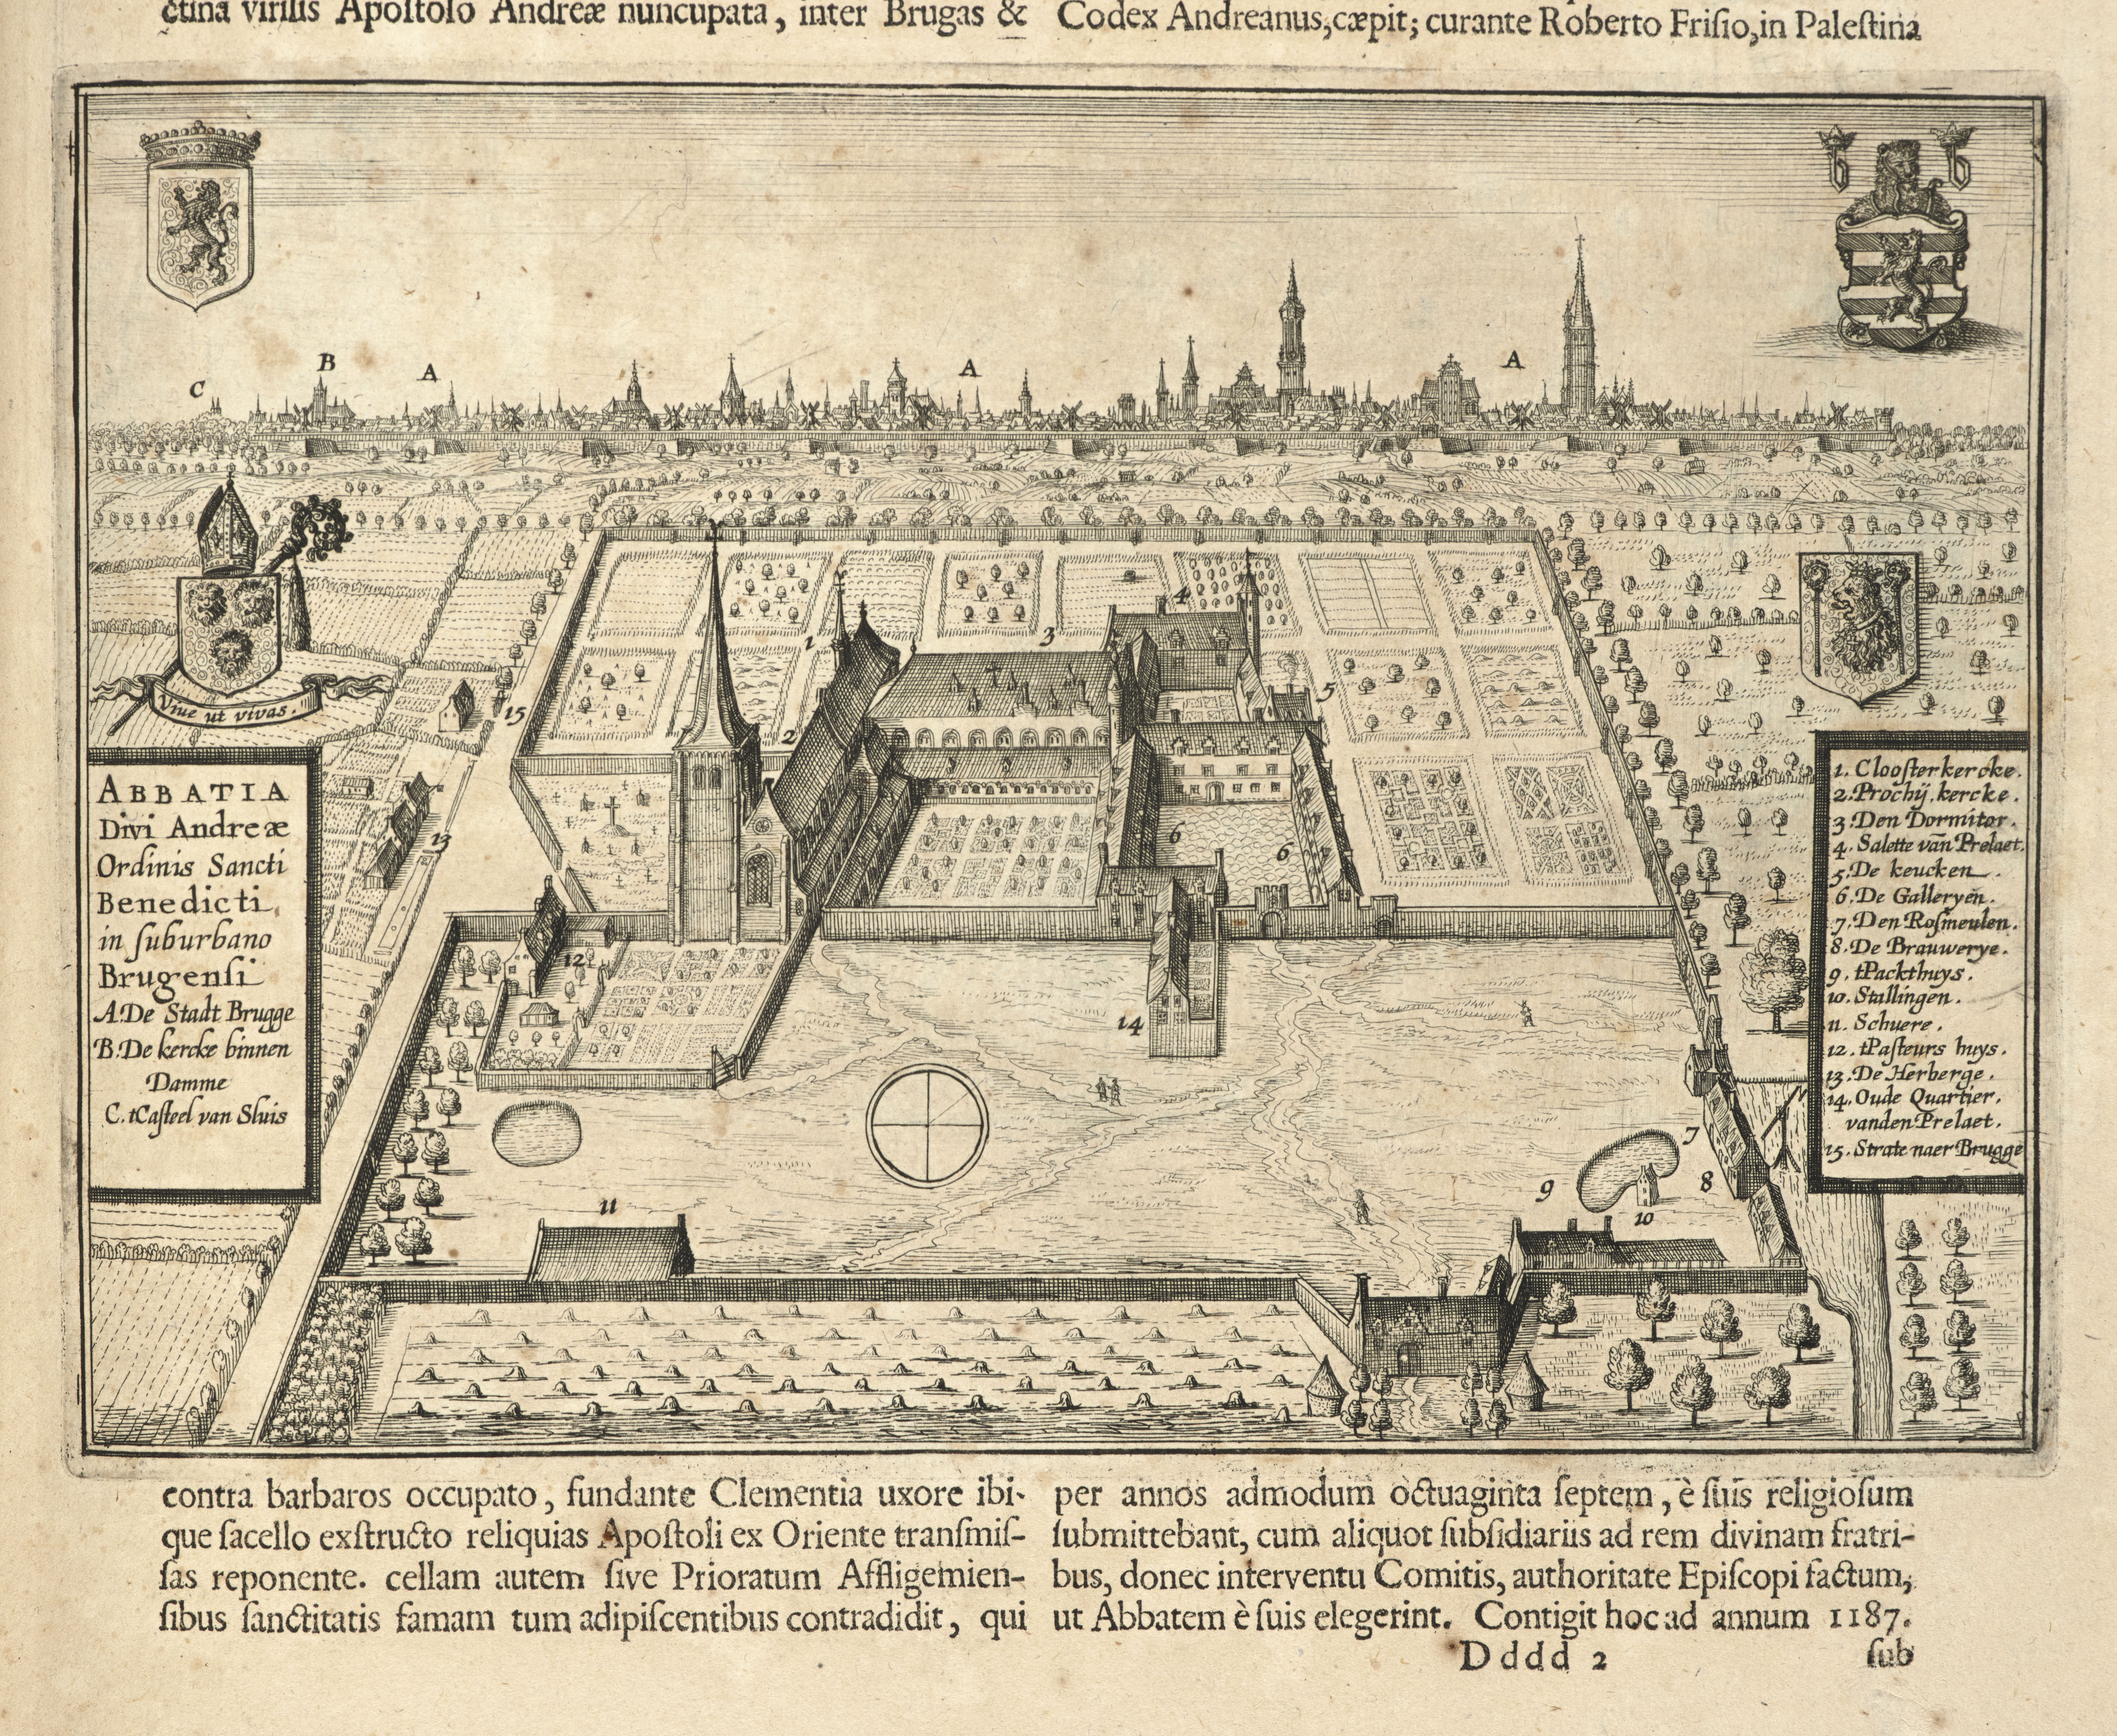 Chorography and natural philosophy in late 17th century